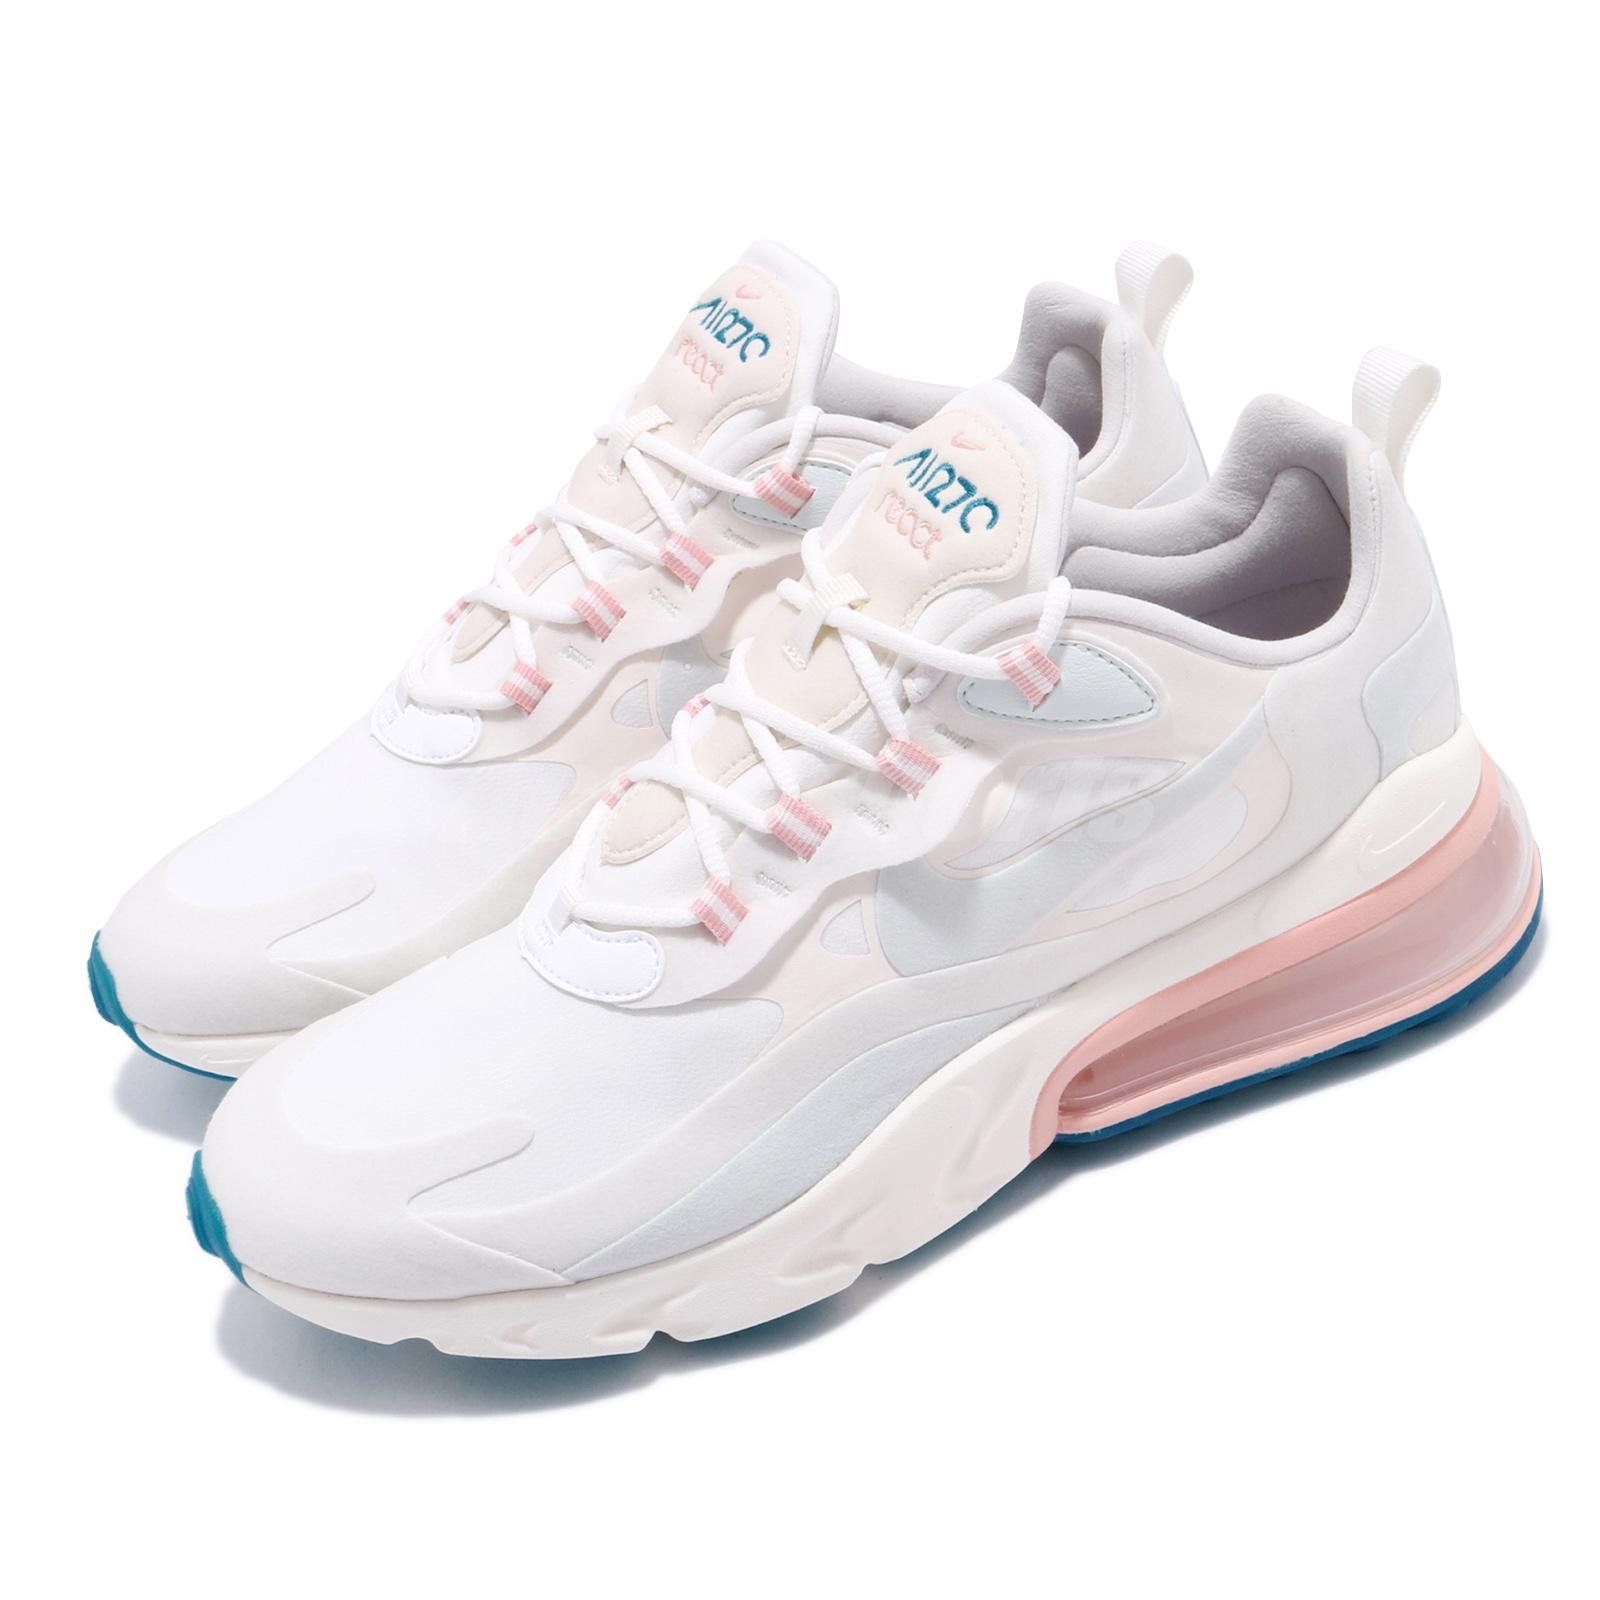 air max 270 react white pink